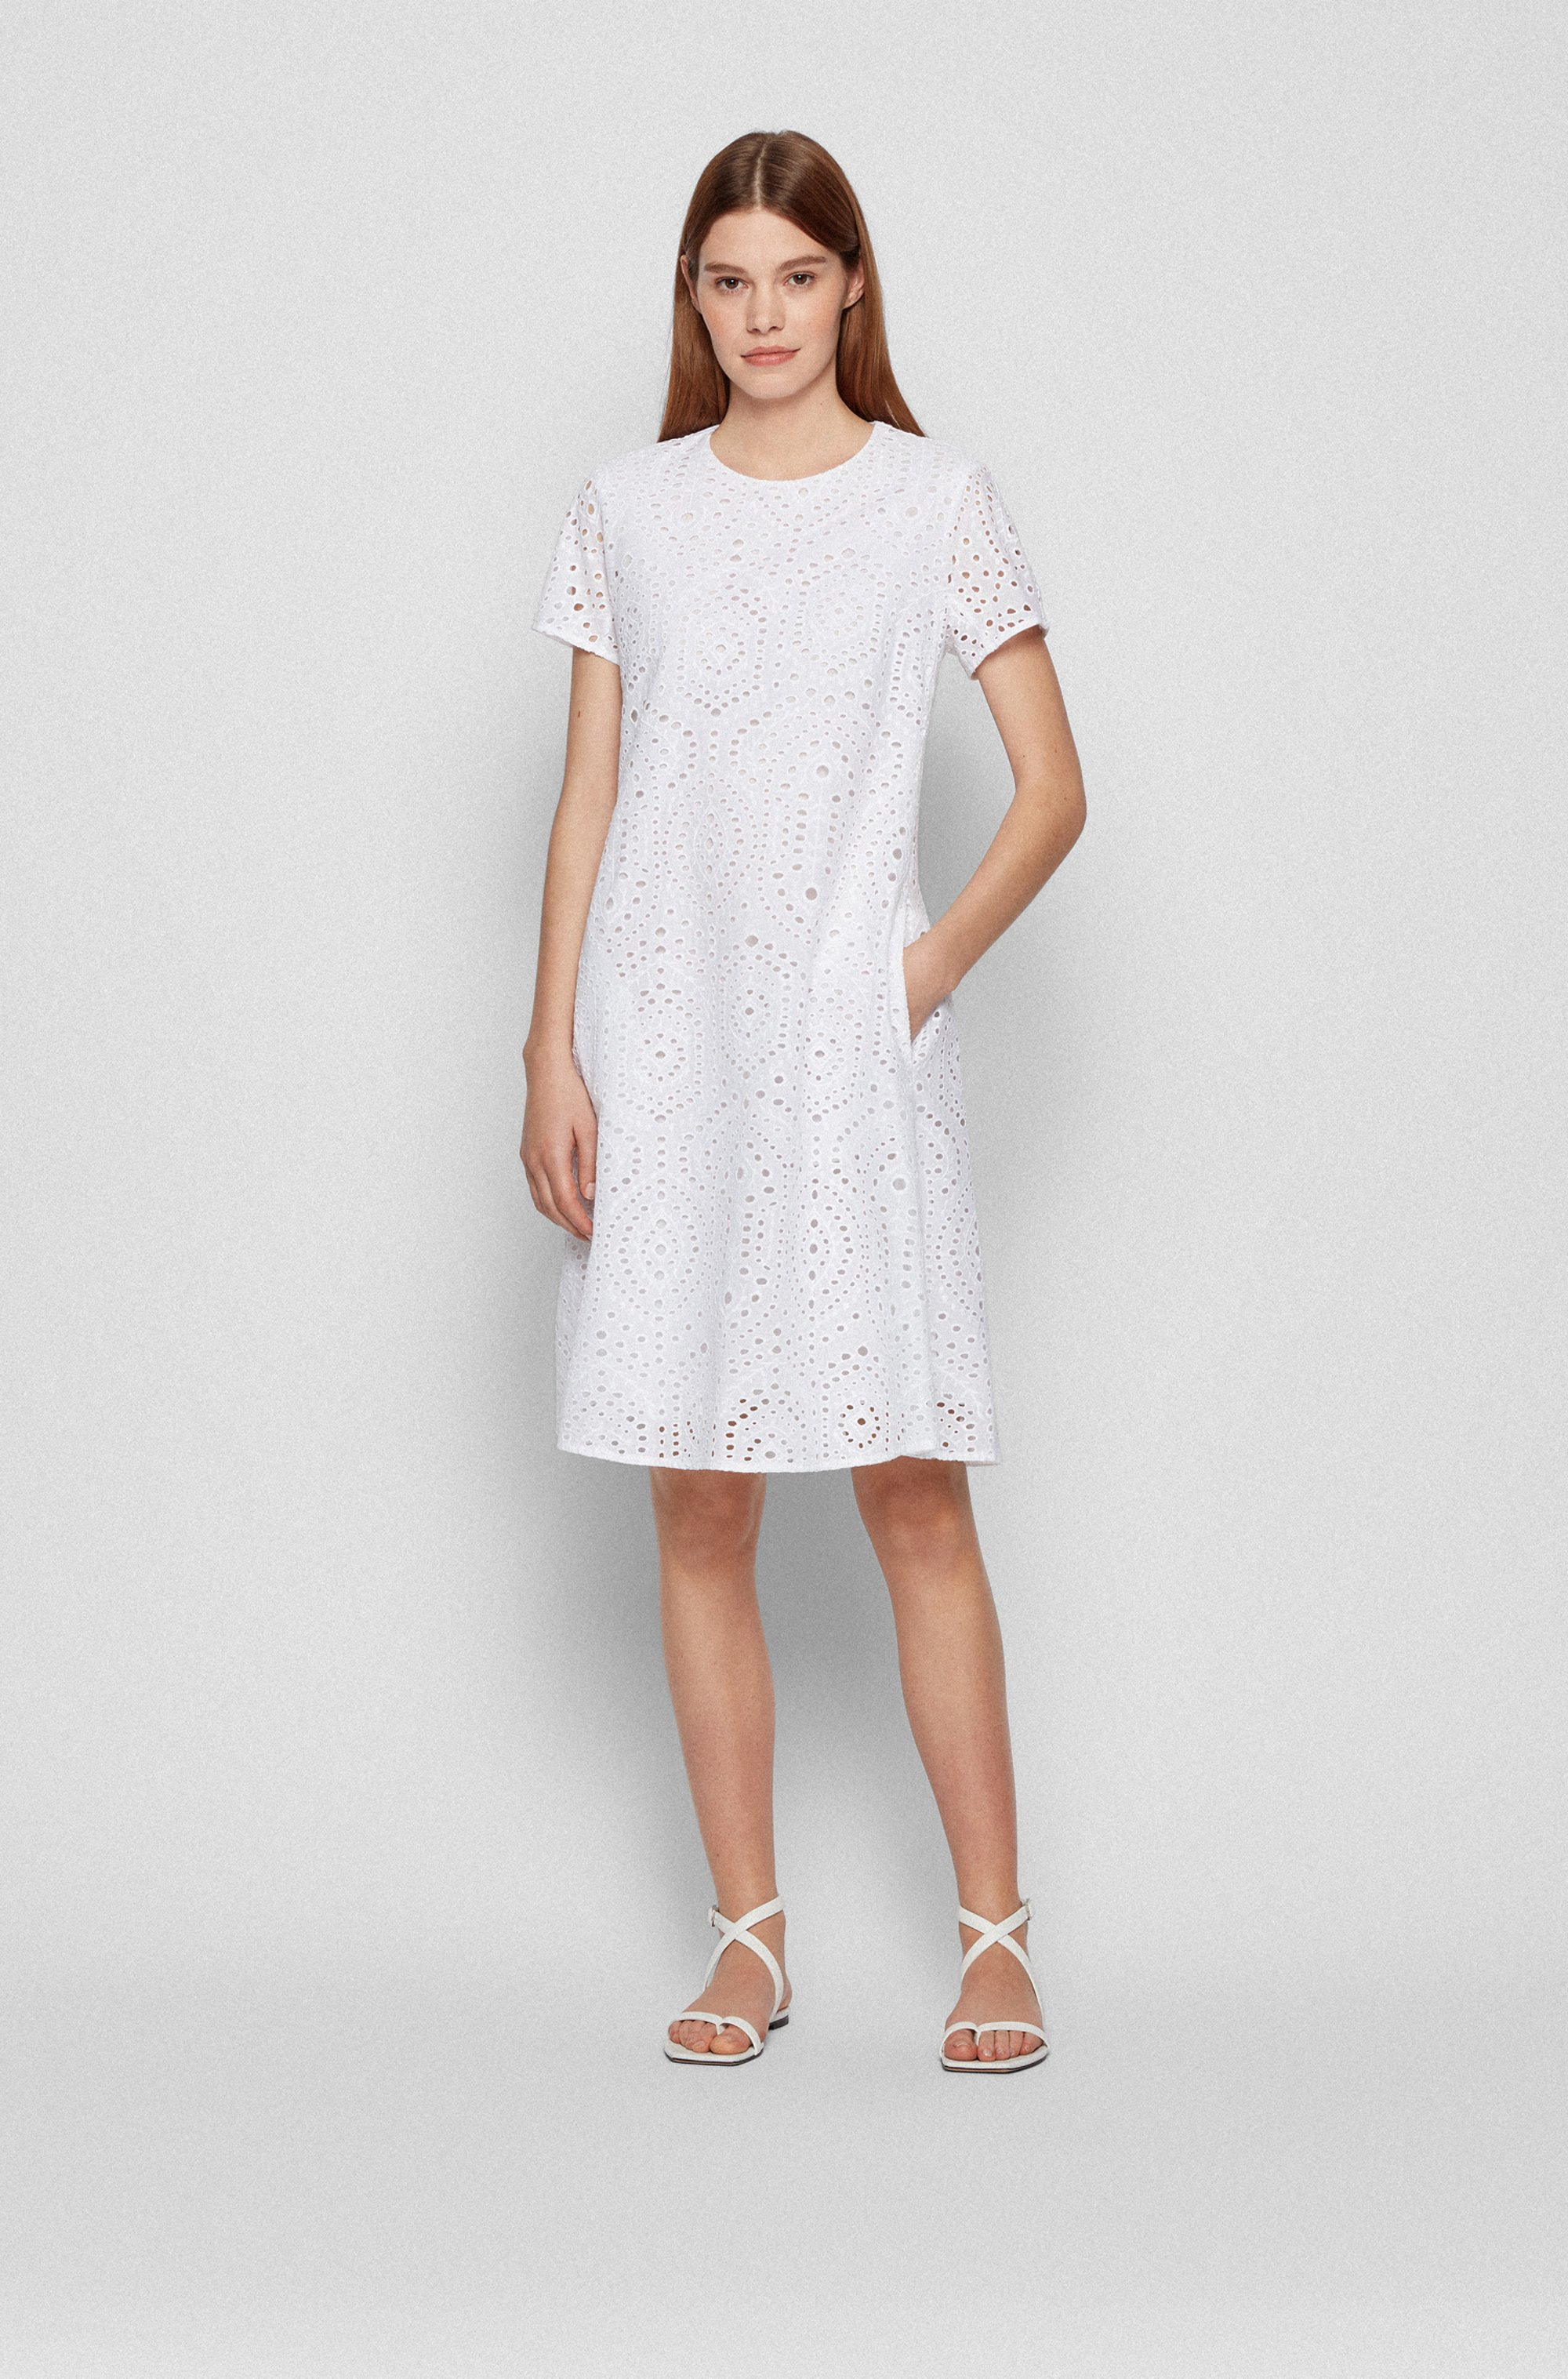 Broderie-anglaise dress with ruched cutaway back